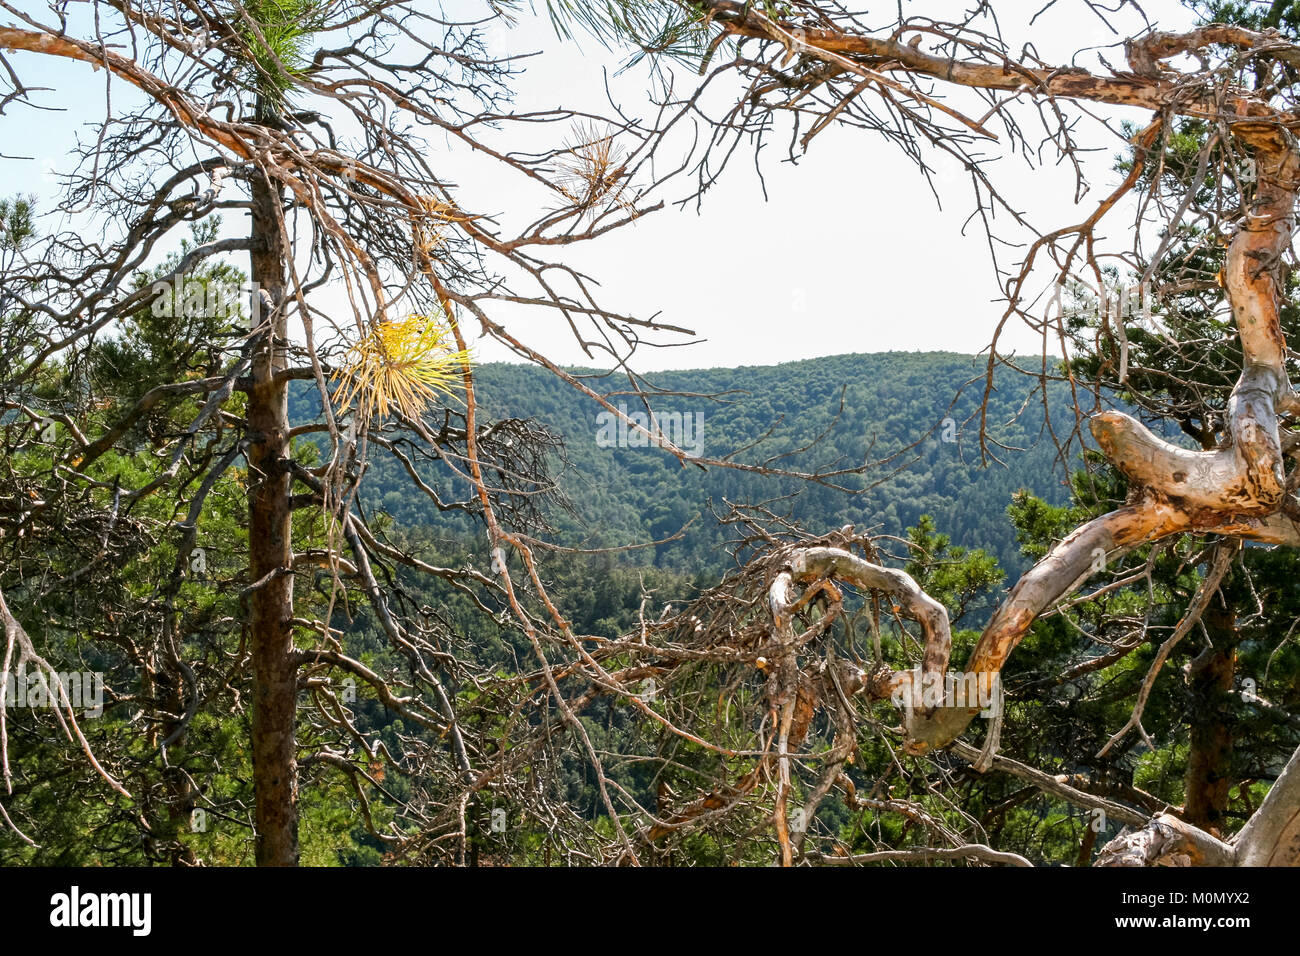 Frame of dry whimsical intertwining of the branches of the trees. Top view through it to mountains. - Stock Image